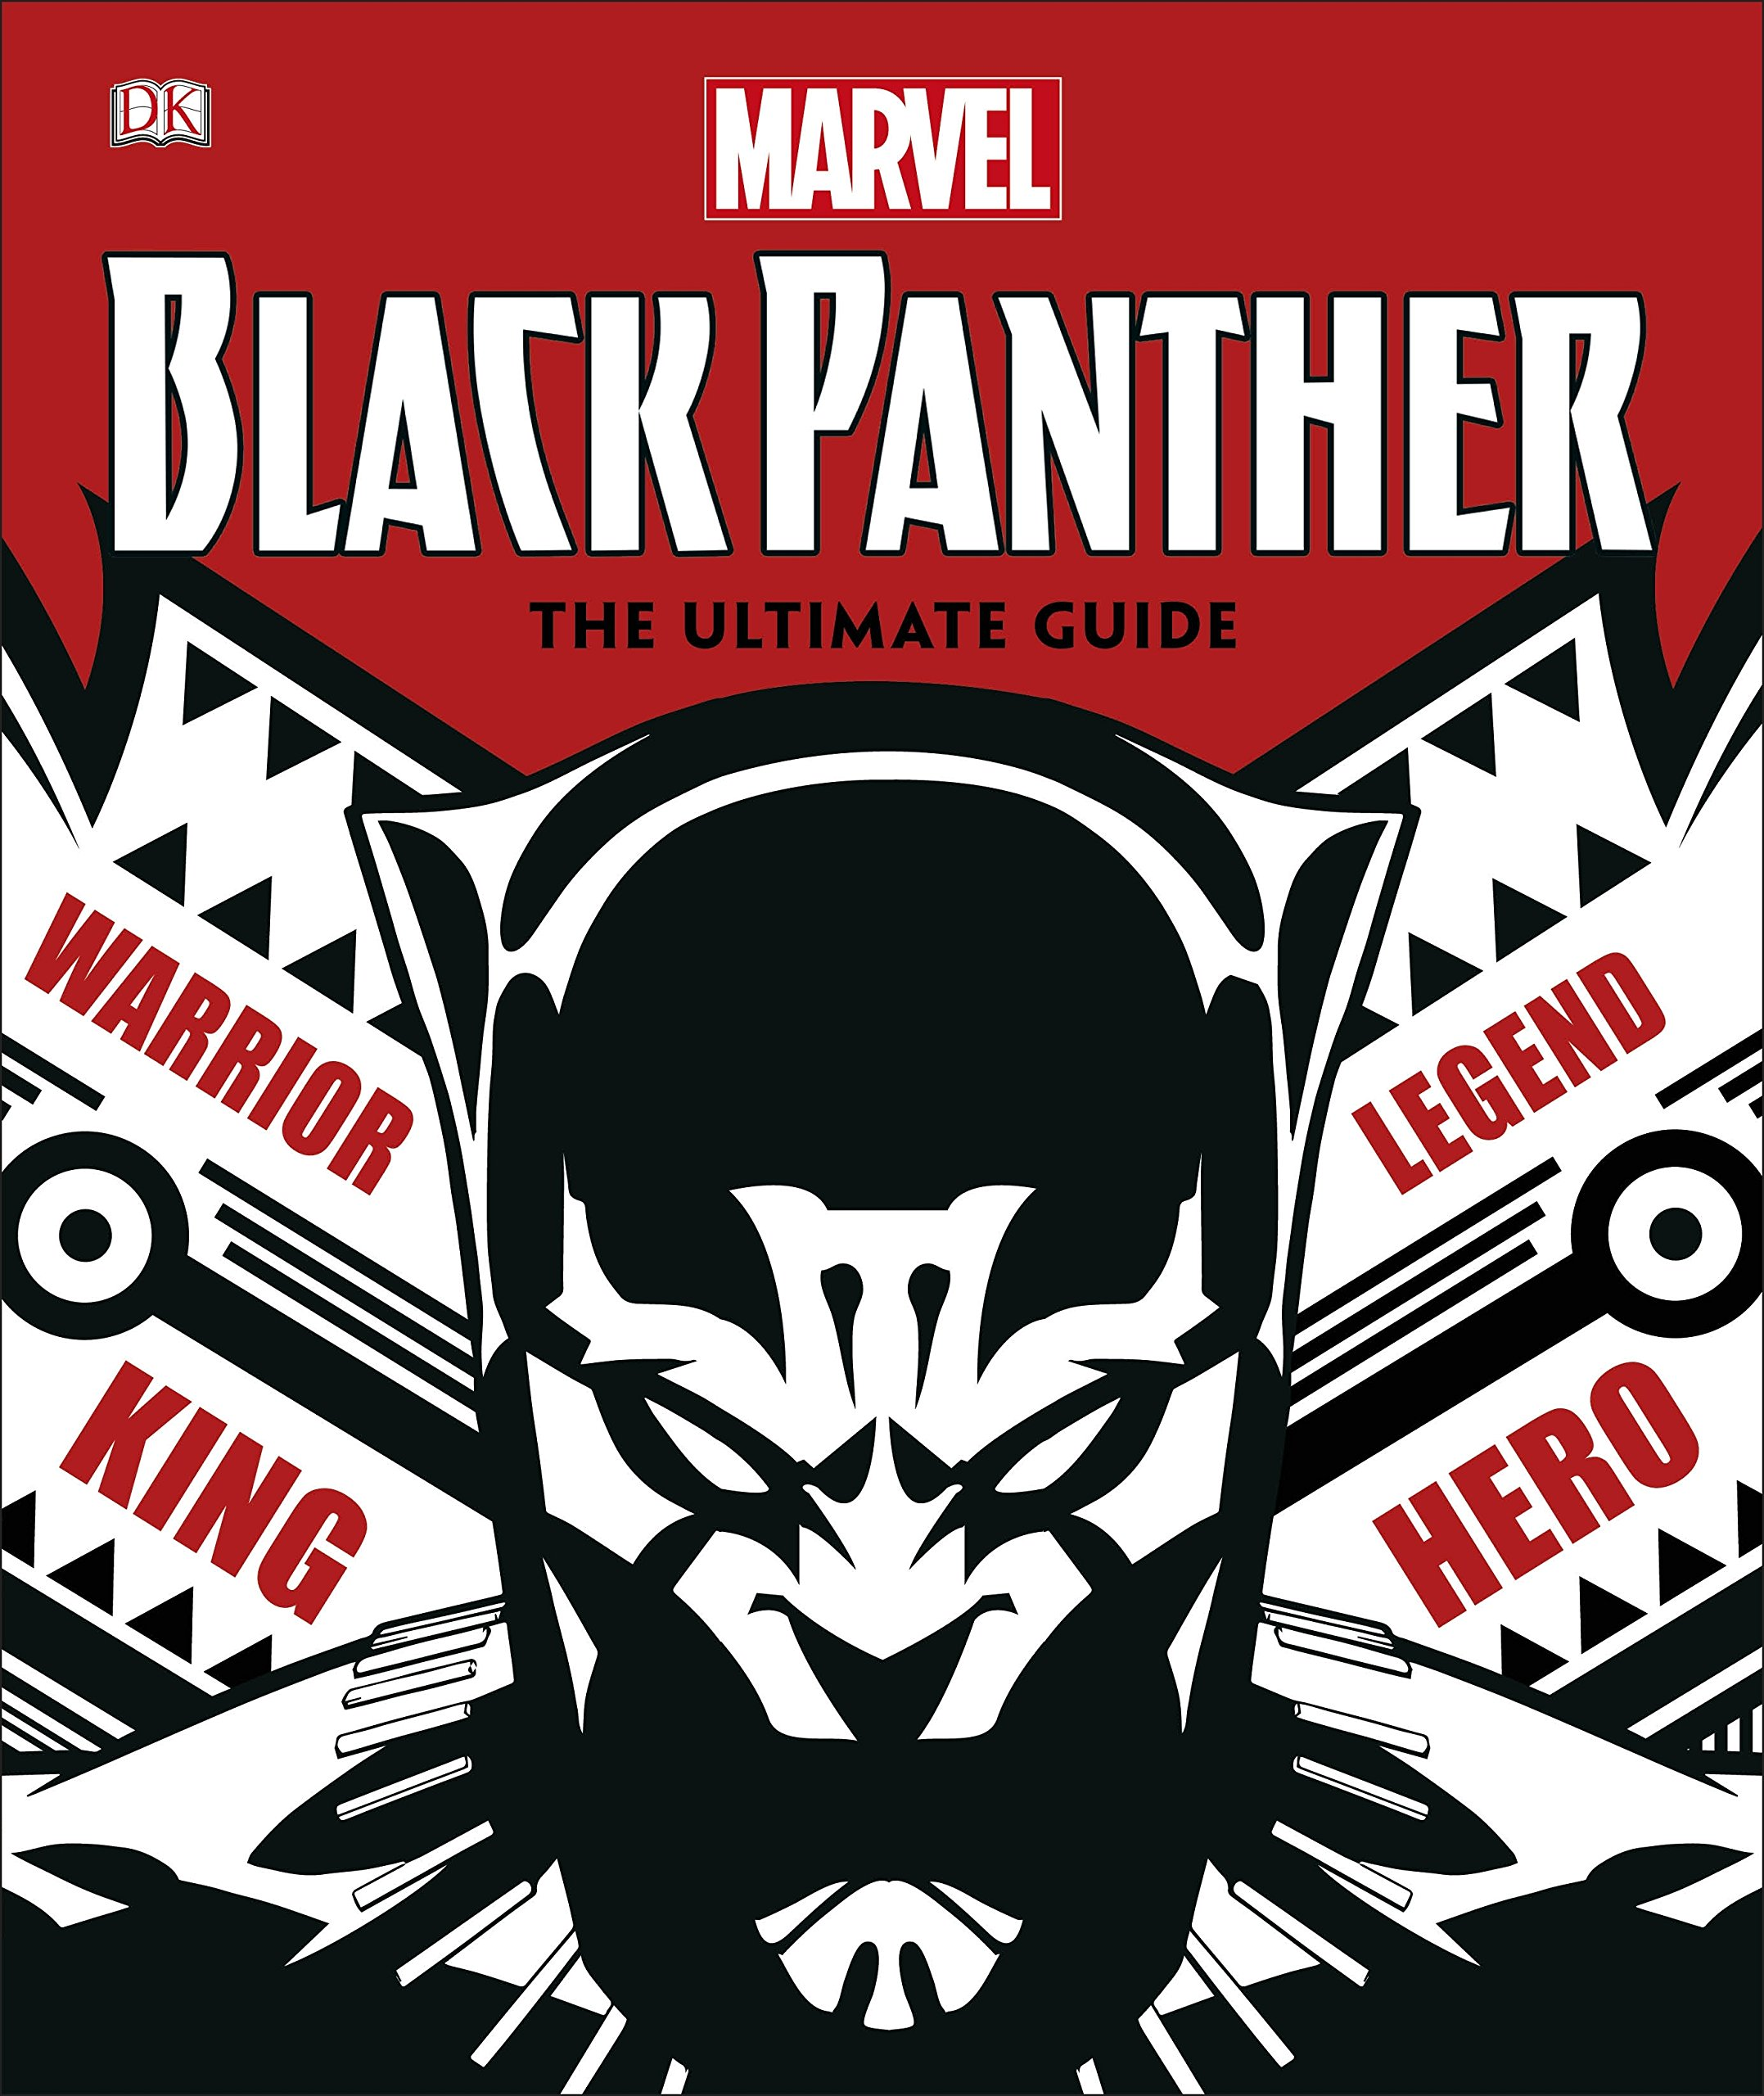 Marvel Black Panther. The Ultimate Guide: Amazon.es: Vv.Aa ...